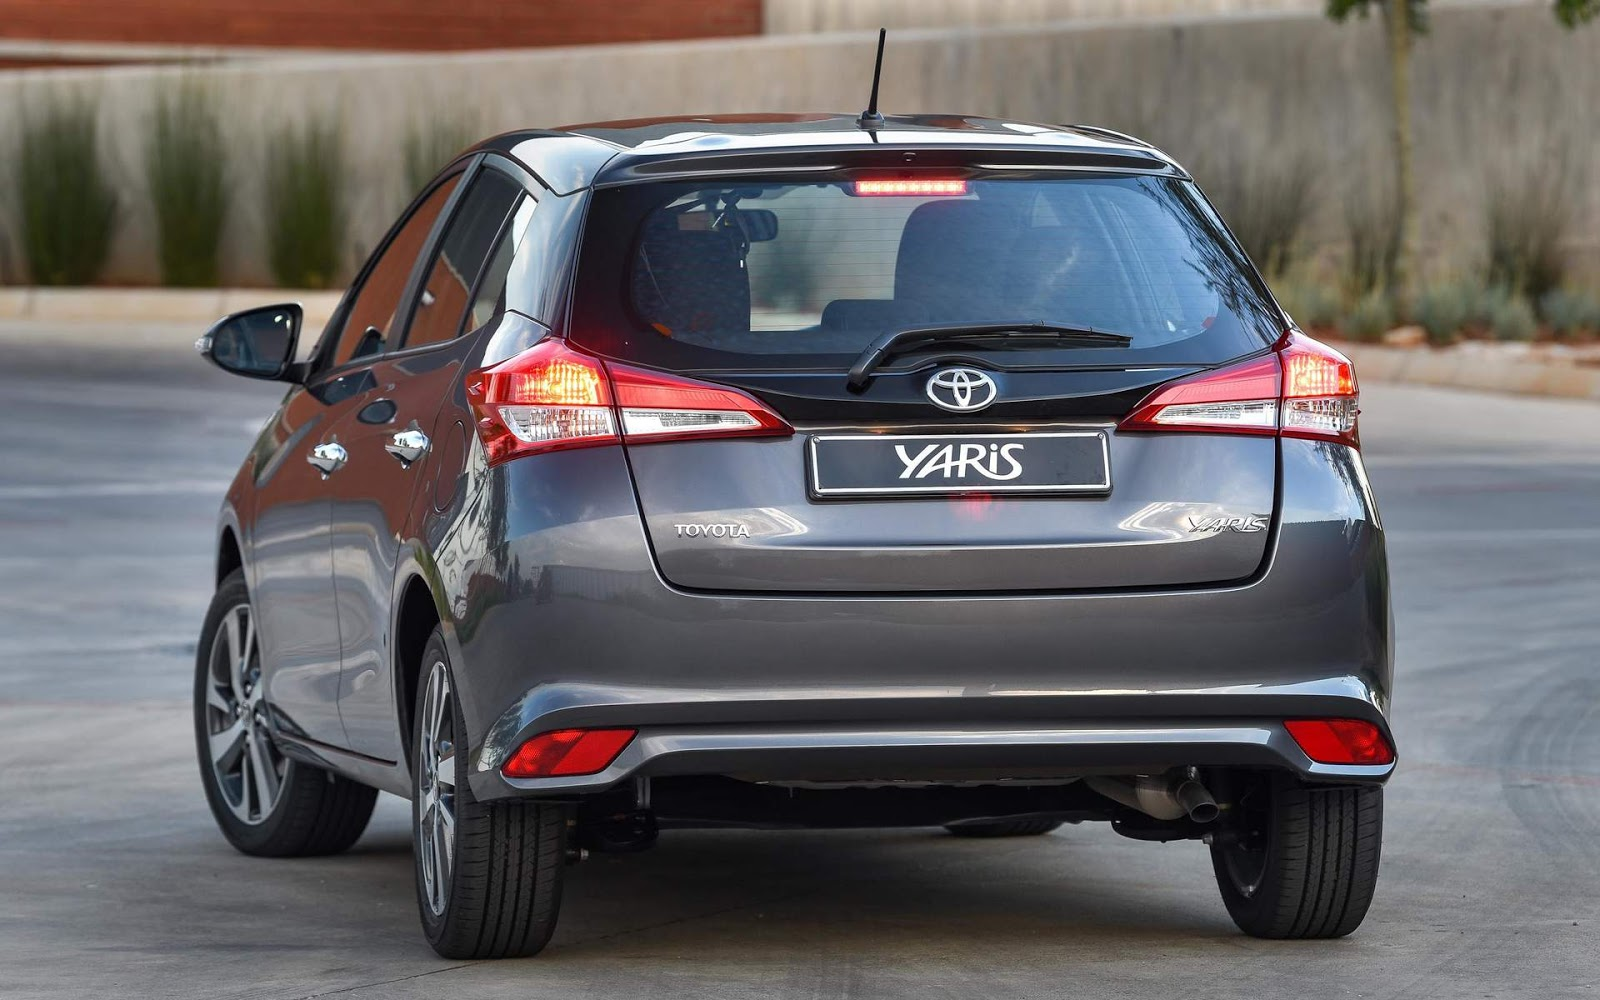 toyota yaris hatch 2018 chega ao m xico por r car blog br. Black Bedroom Furniture Sets. Home Design Ideas